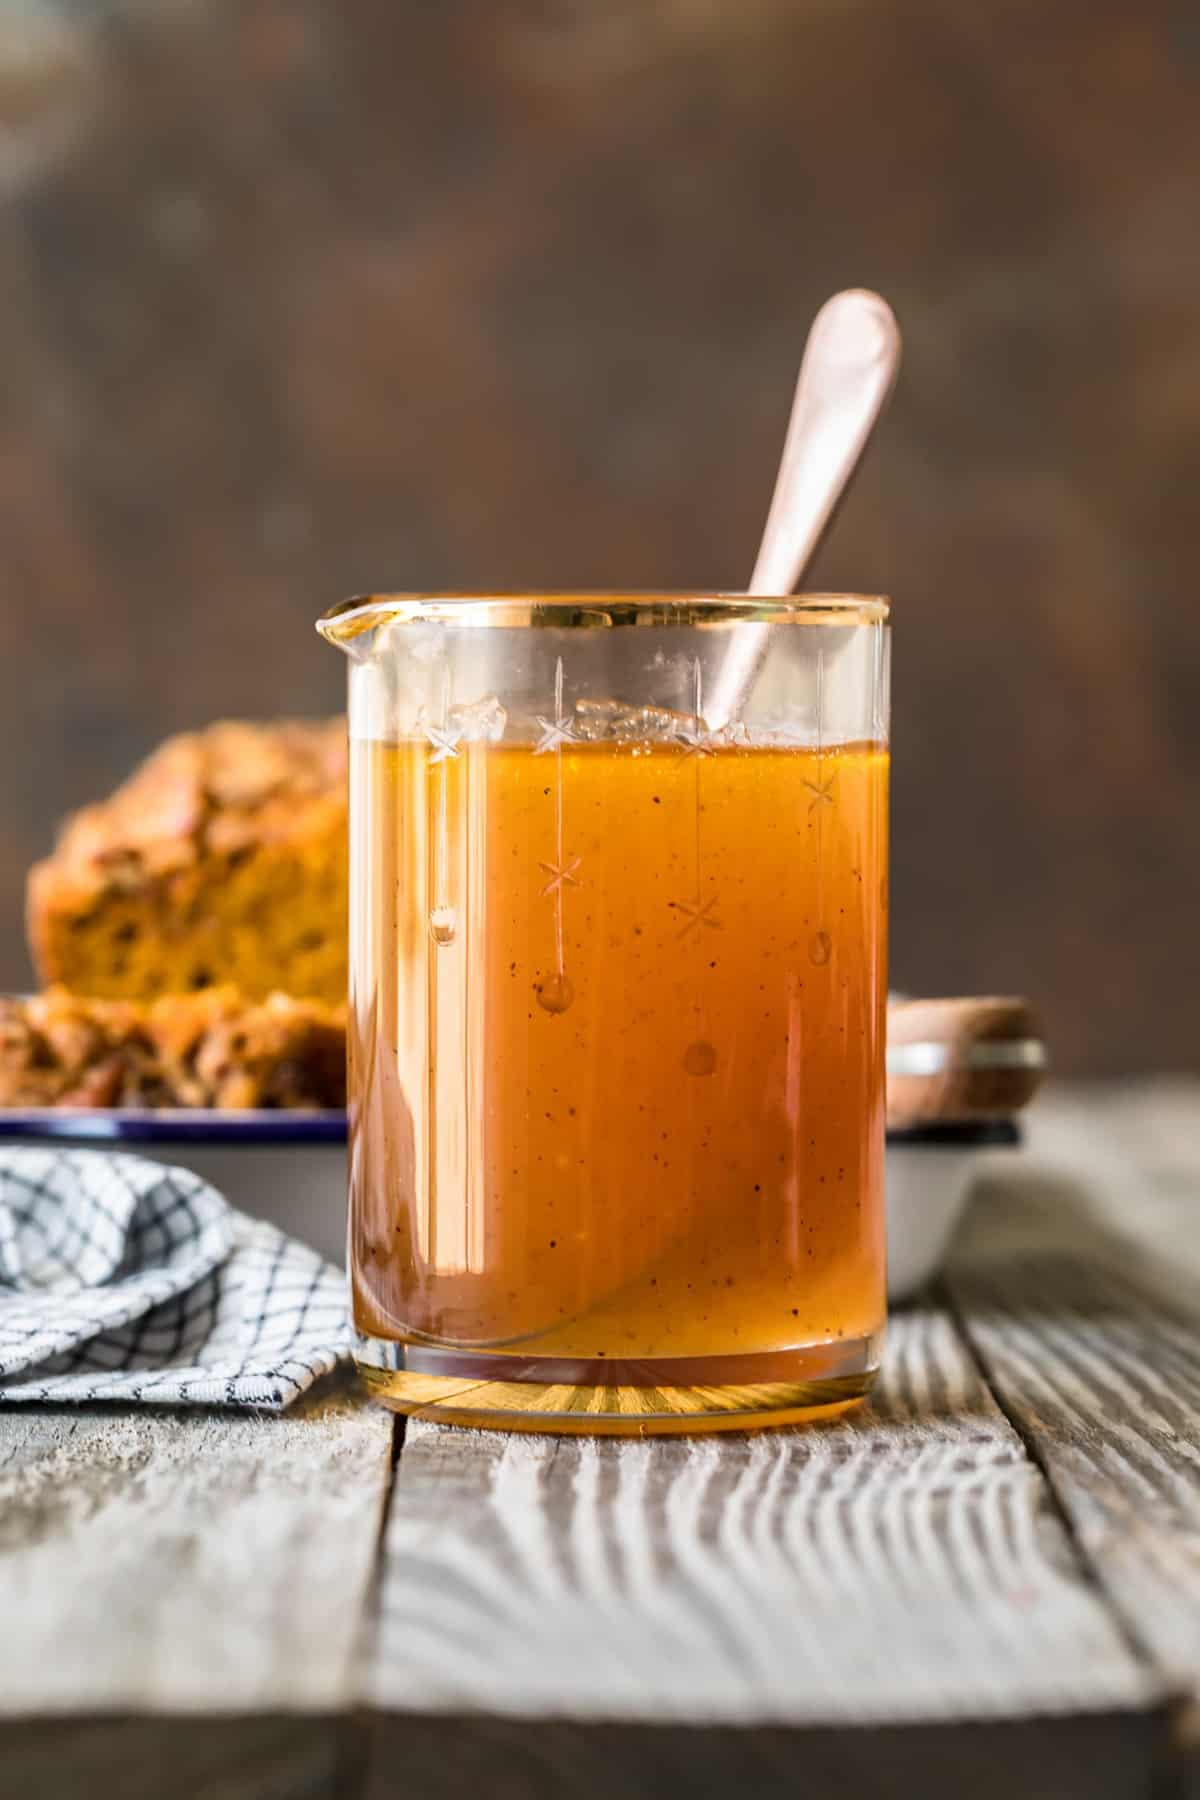 Apple Cider Sauce in a jug ready to serve